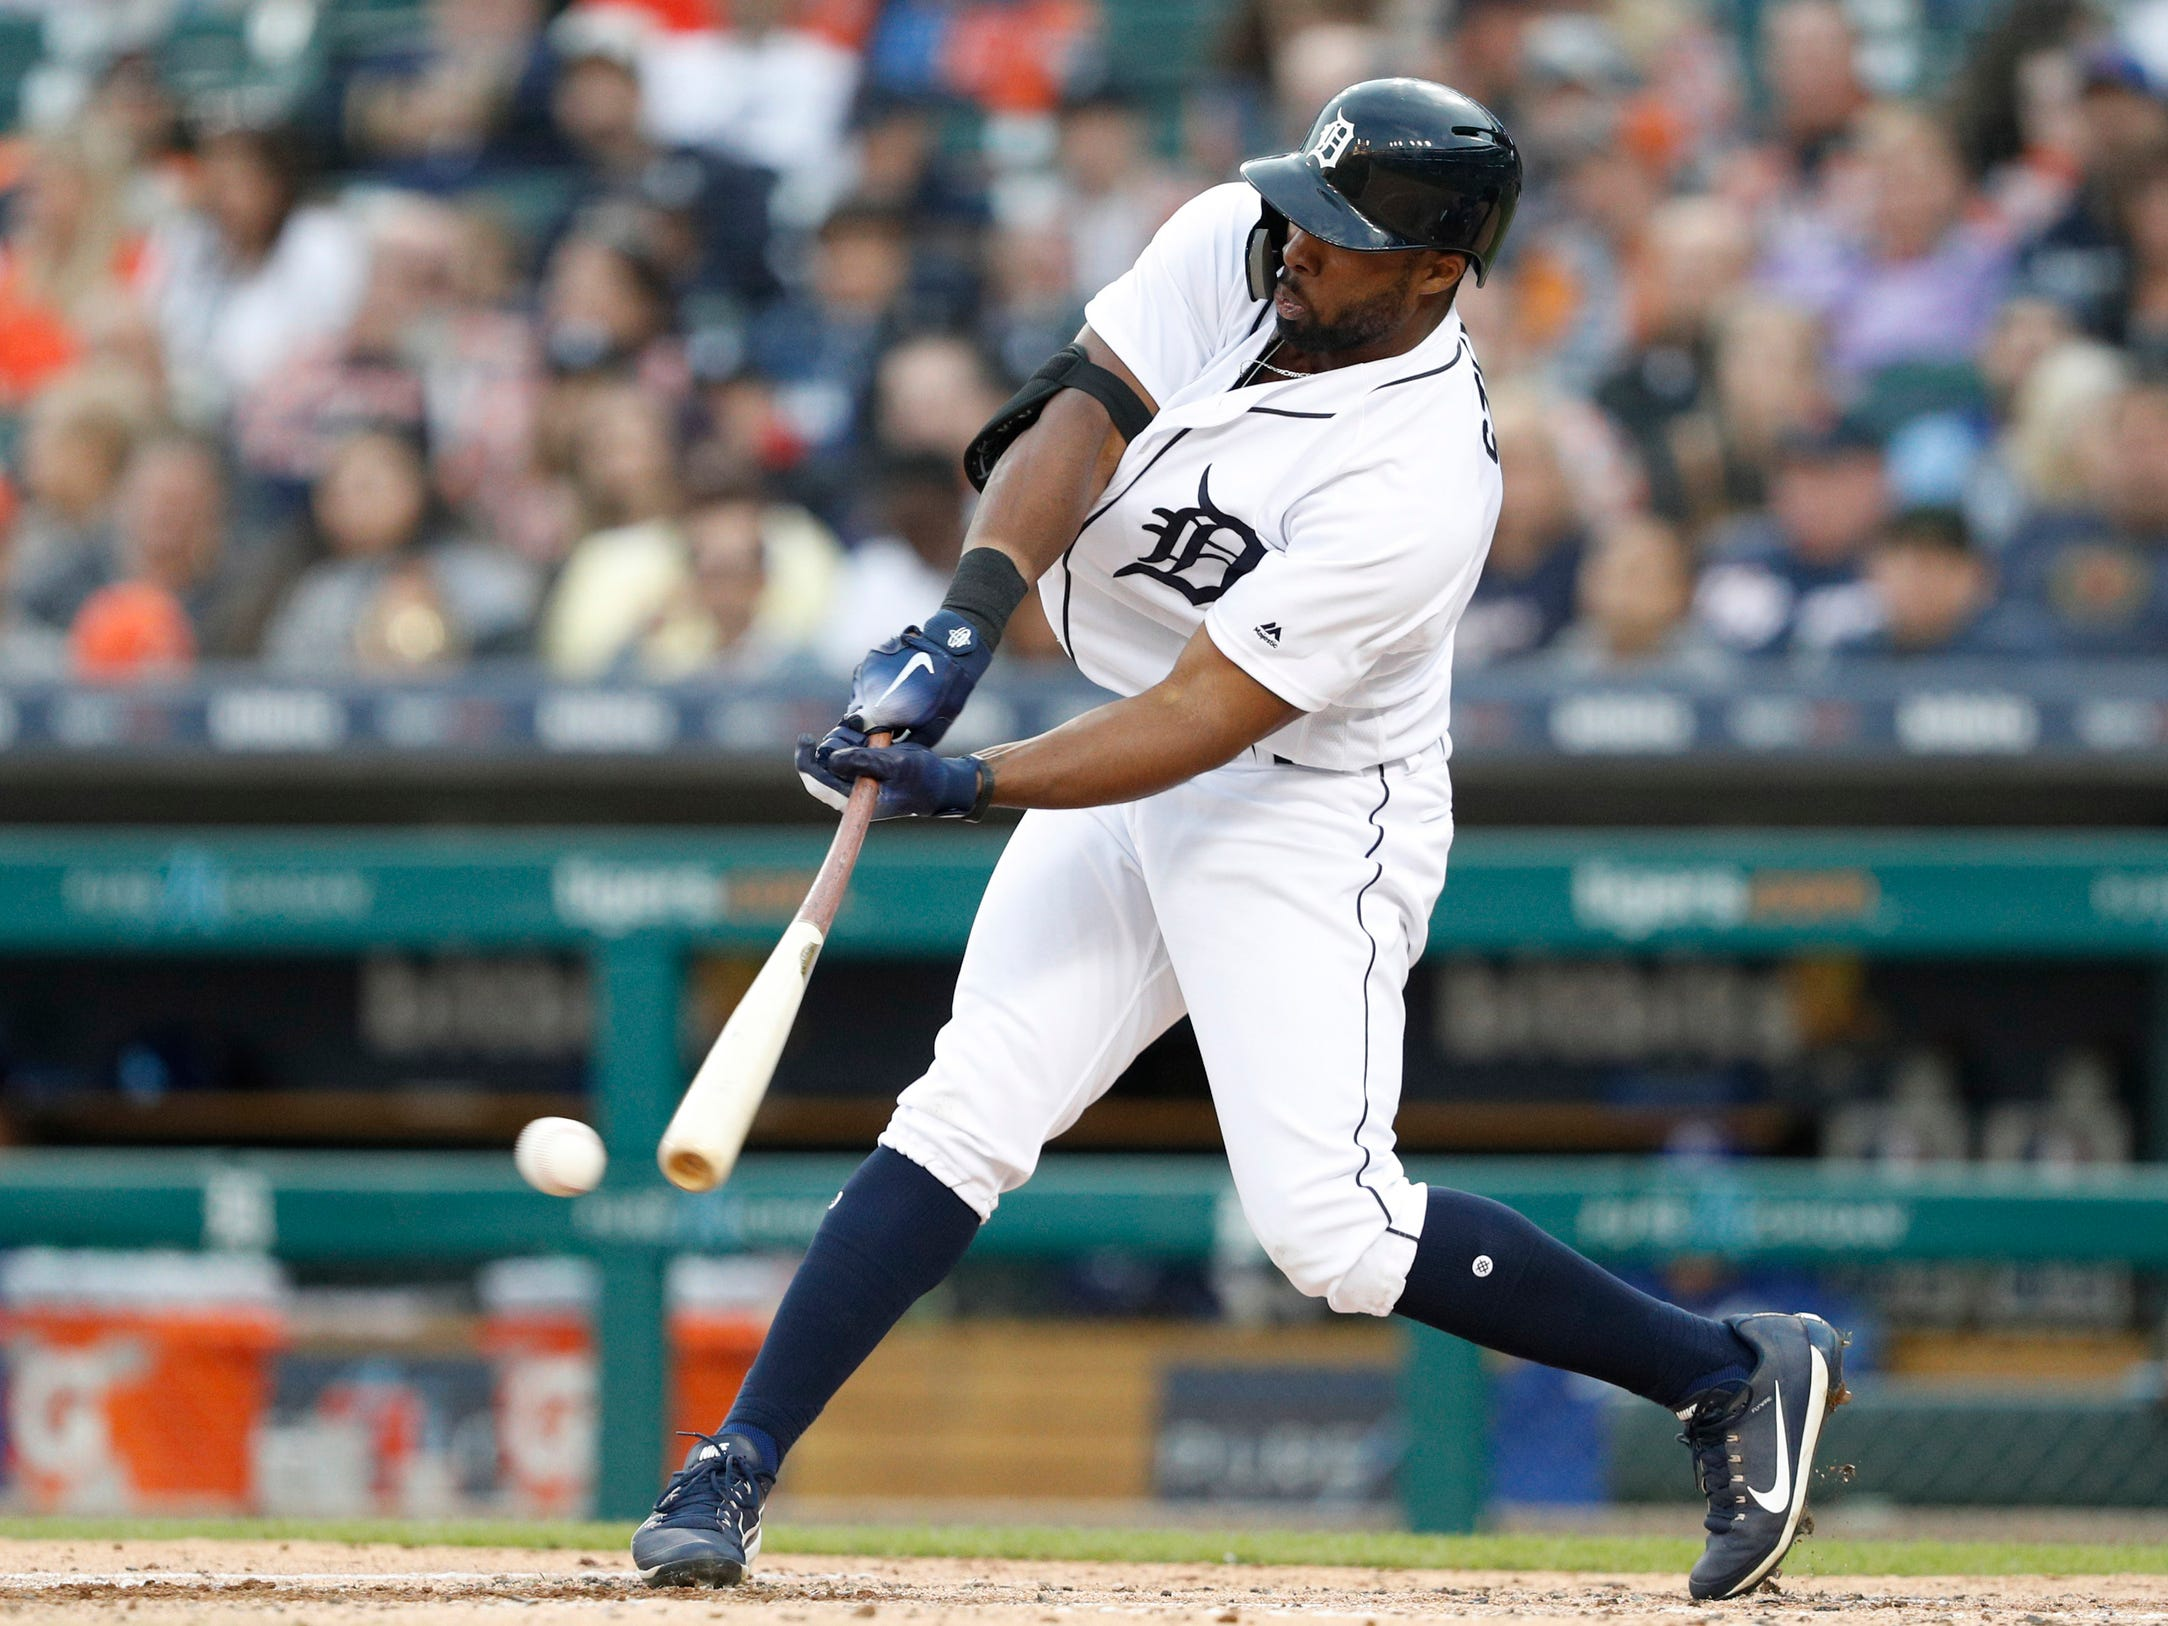 Detroit Tigers left fielder Christin Stewart hits a single during the third inning against the Kansas City Royals at Comerica Park on Sept. 22, 2018.